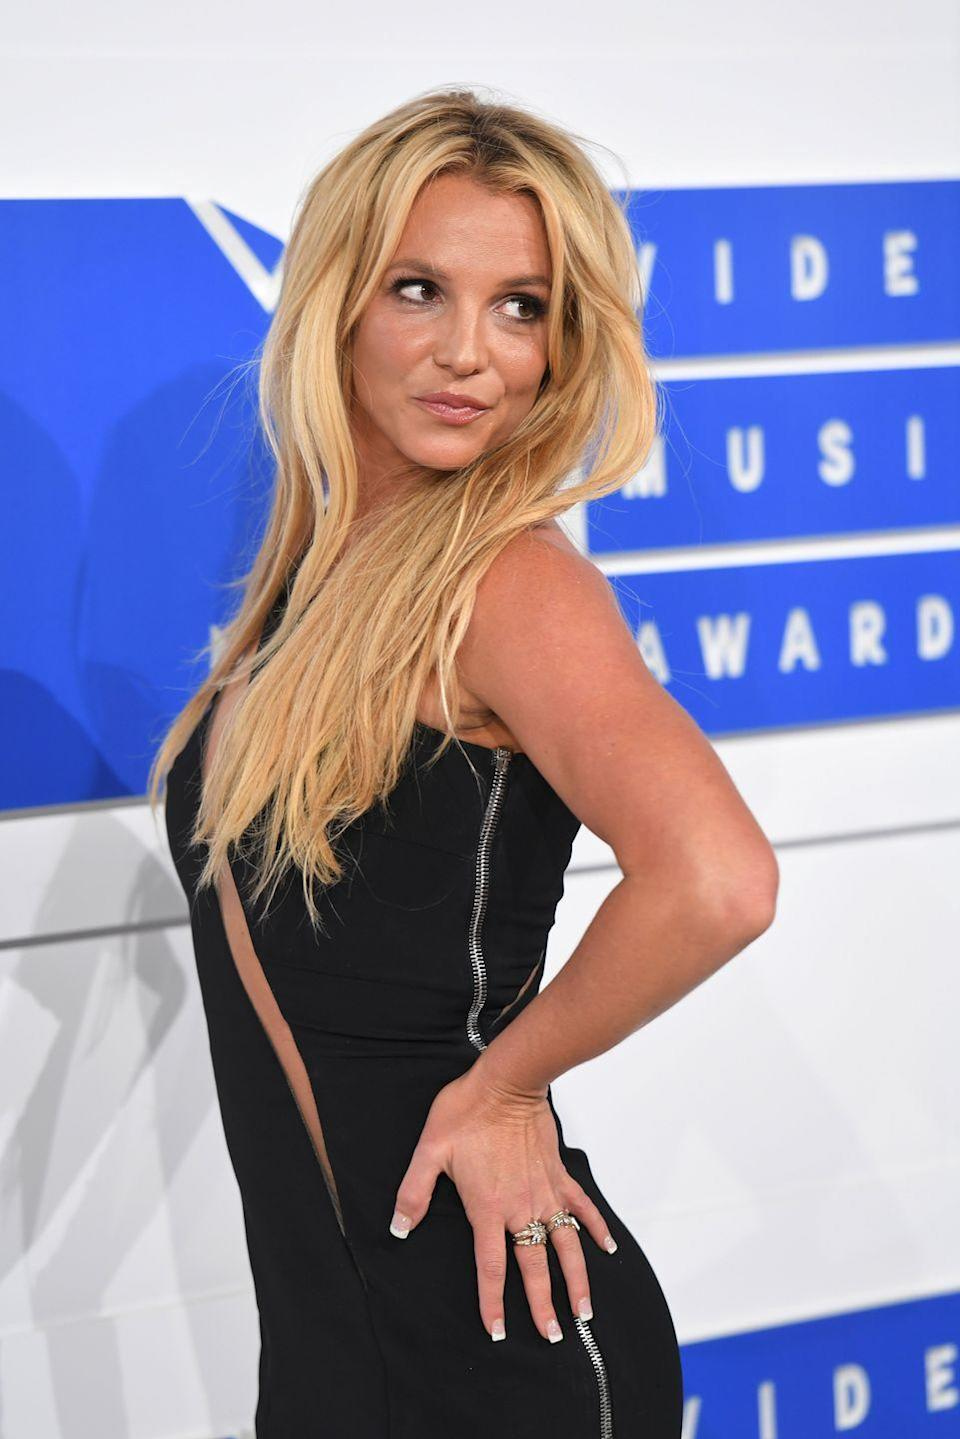 """<p>Britney was not afraid to admit that she's had a little work done on her face. In a <a href=""""https://www.cosmopolitan.com/uk/beauty-hair/news/a24448/britney-spears-lip-injections/"""" rel=""""nofollow noopener"""" target=""""_blank"""" data-ylk=""""slk:2013 interview with"""" class=""""link rapid-noclick-resp"""">2013 interview with</a><em><a href=""""https://www.cosmopolitan.com/uk/beauty-hair/news/a24448/britney-spears-lip-injections/"""" rel=""""nofollow noopener"""" target=""""_blank"""" data-ylk=""""slk:InStyle"""" class=""""link rapid-noclick-resp""""> InStyle</a></em>, the """"Oops... I Did It Again"""" singer said, """"A doctor I see, [Beverly Hills plastic surgeon] Dr. [Raj] Kanodia, does fun stuff to me sometimes. I've had lip injections before.""""<br></p>"""